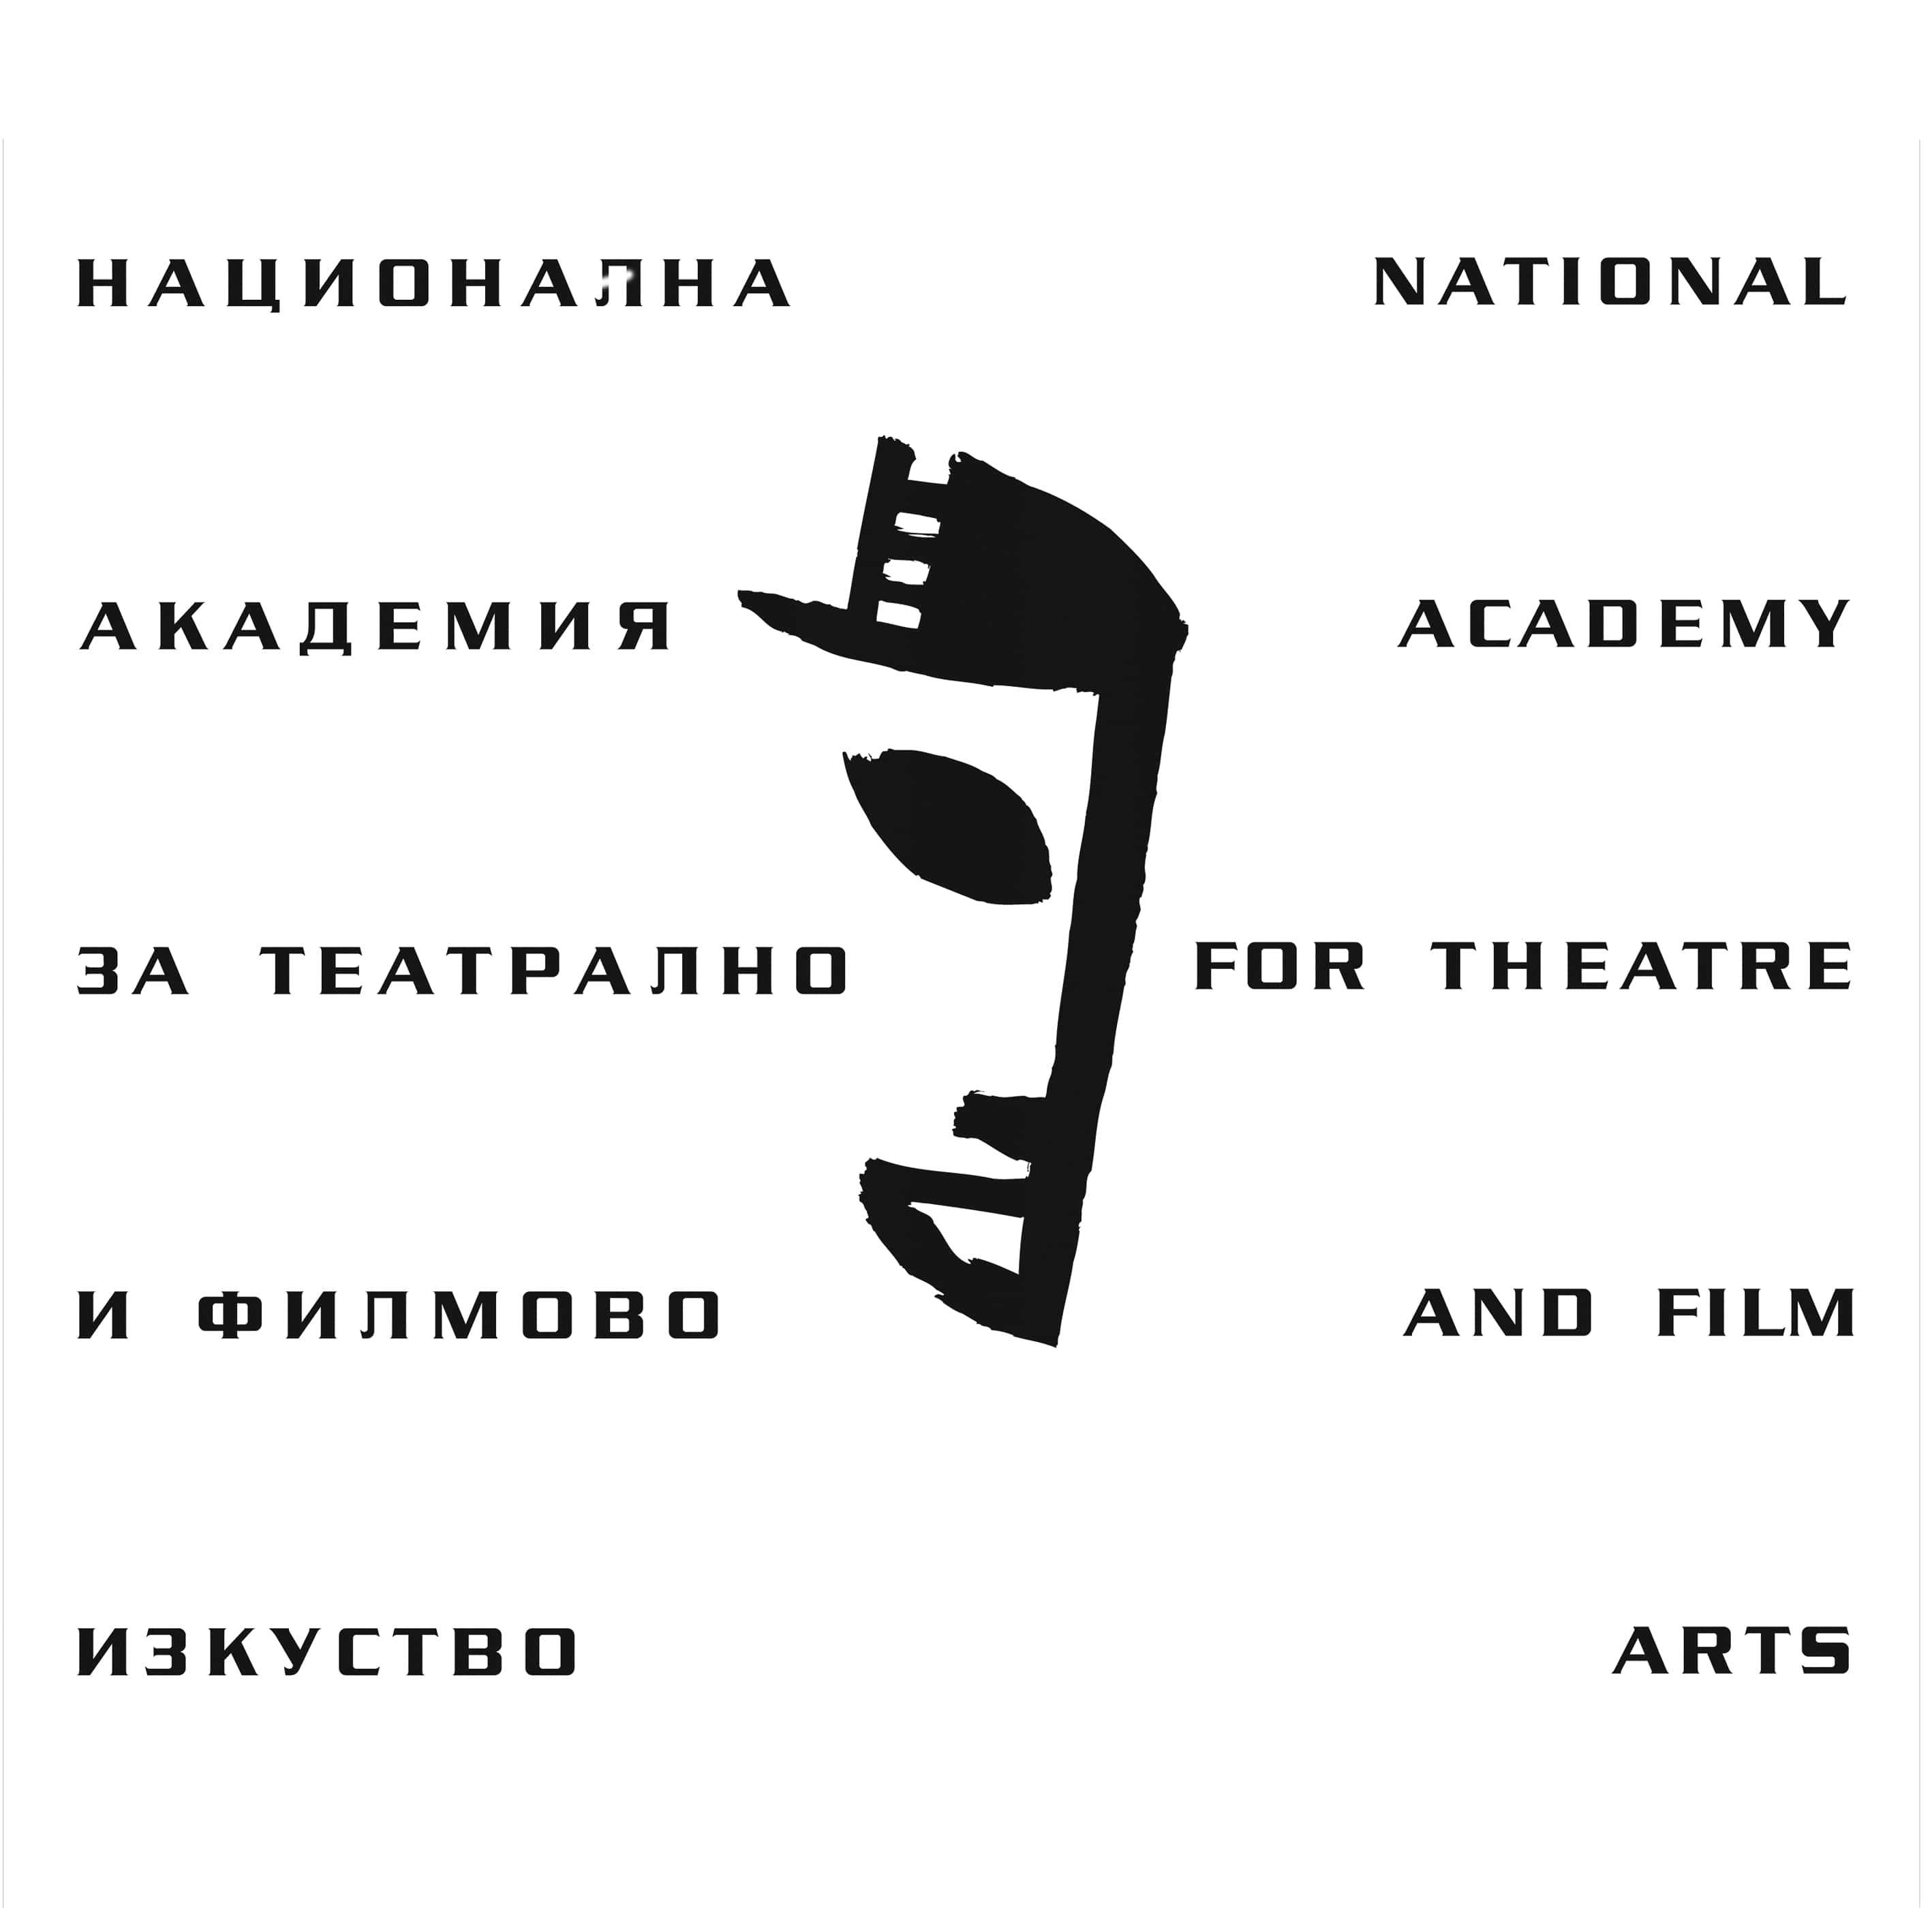 Студентско общежитие - Krastyo Sarafov National Academy for Theatre and Film Arts